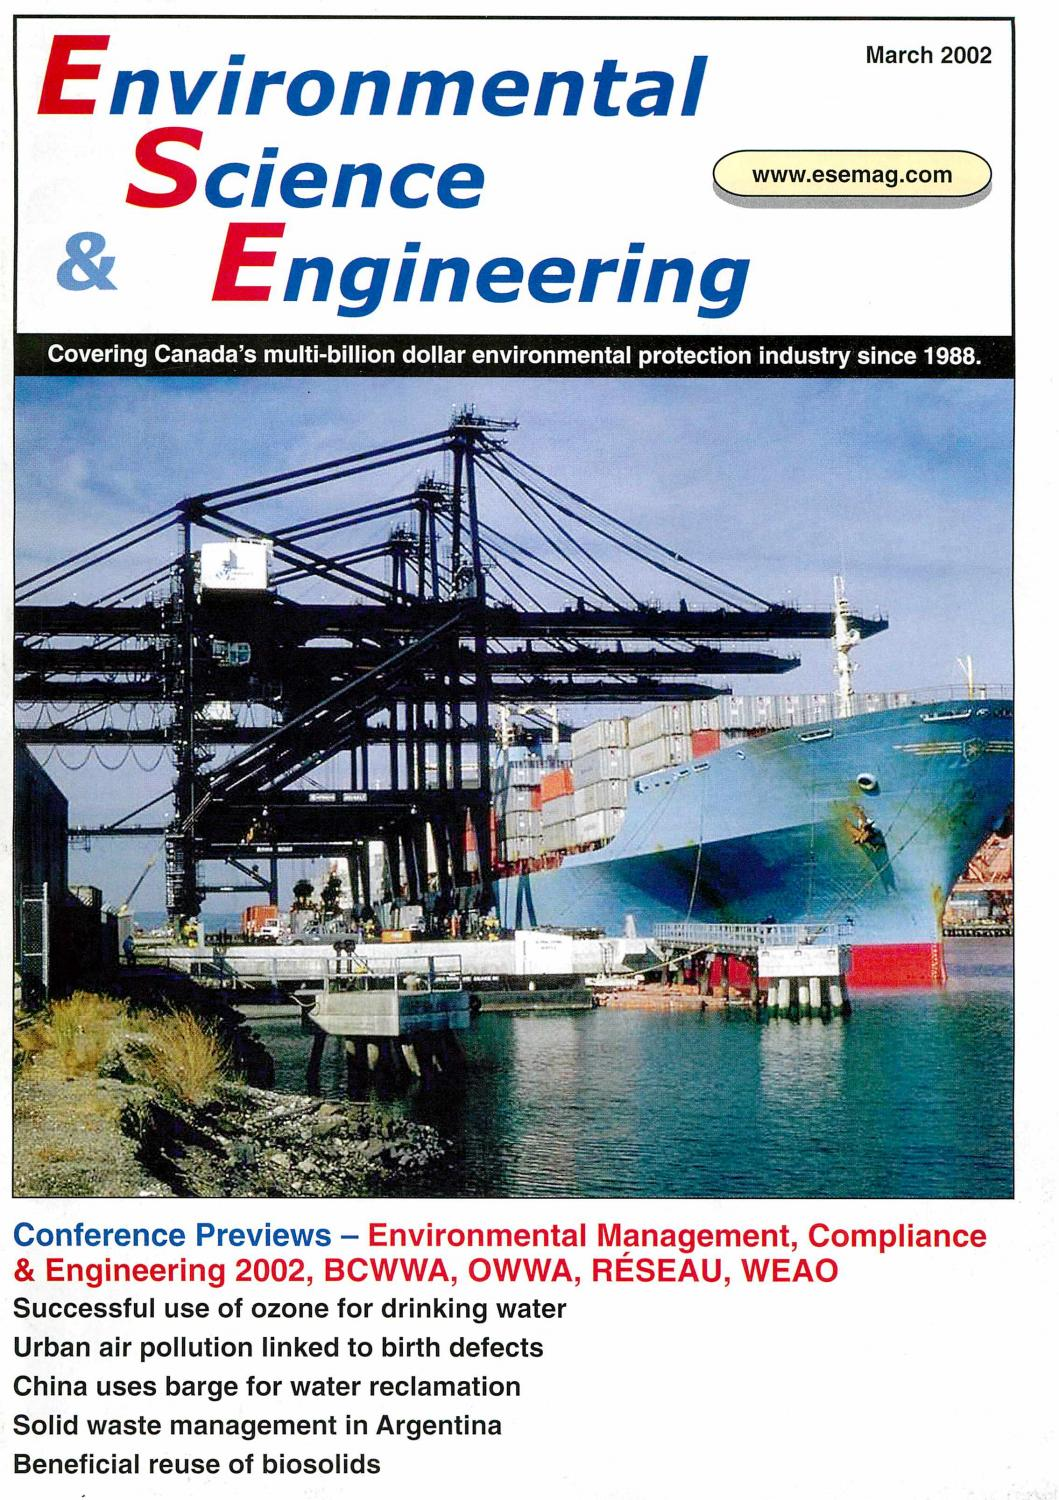 Environmental Science & Engineering Magazine (ESEMAG) March